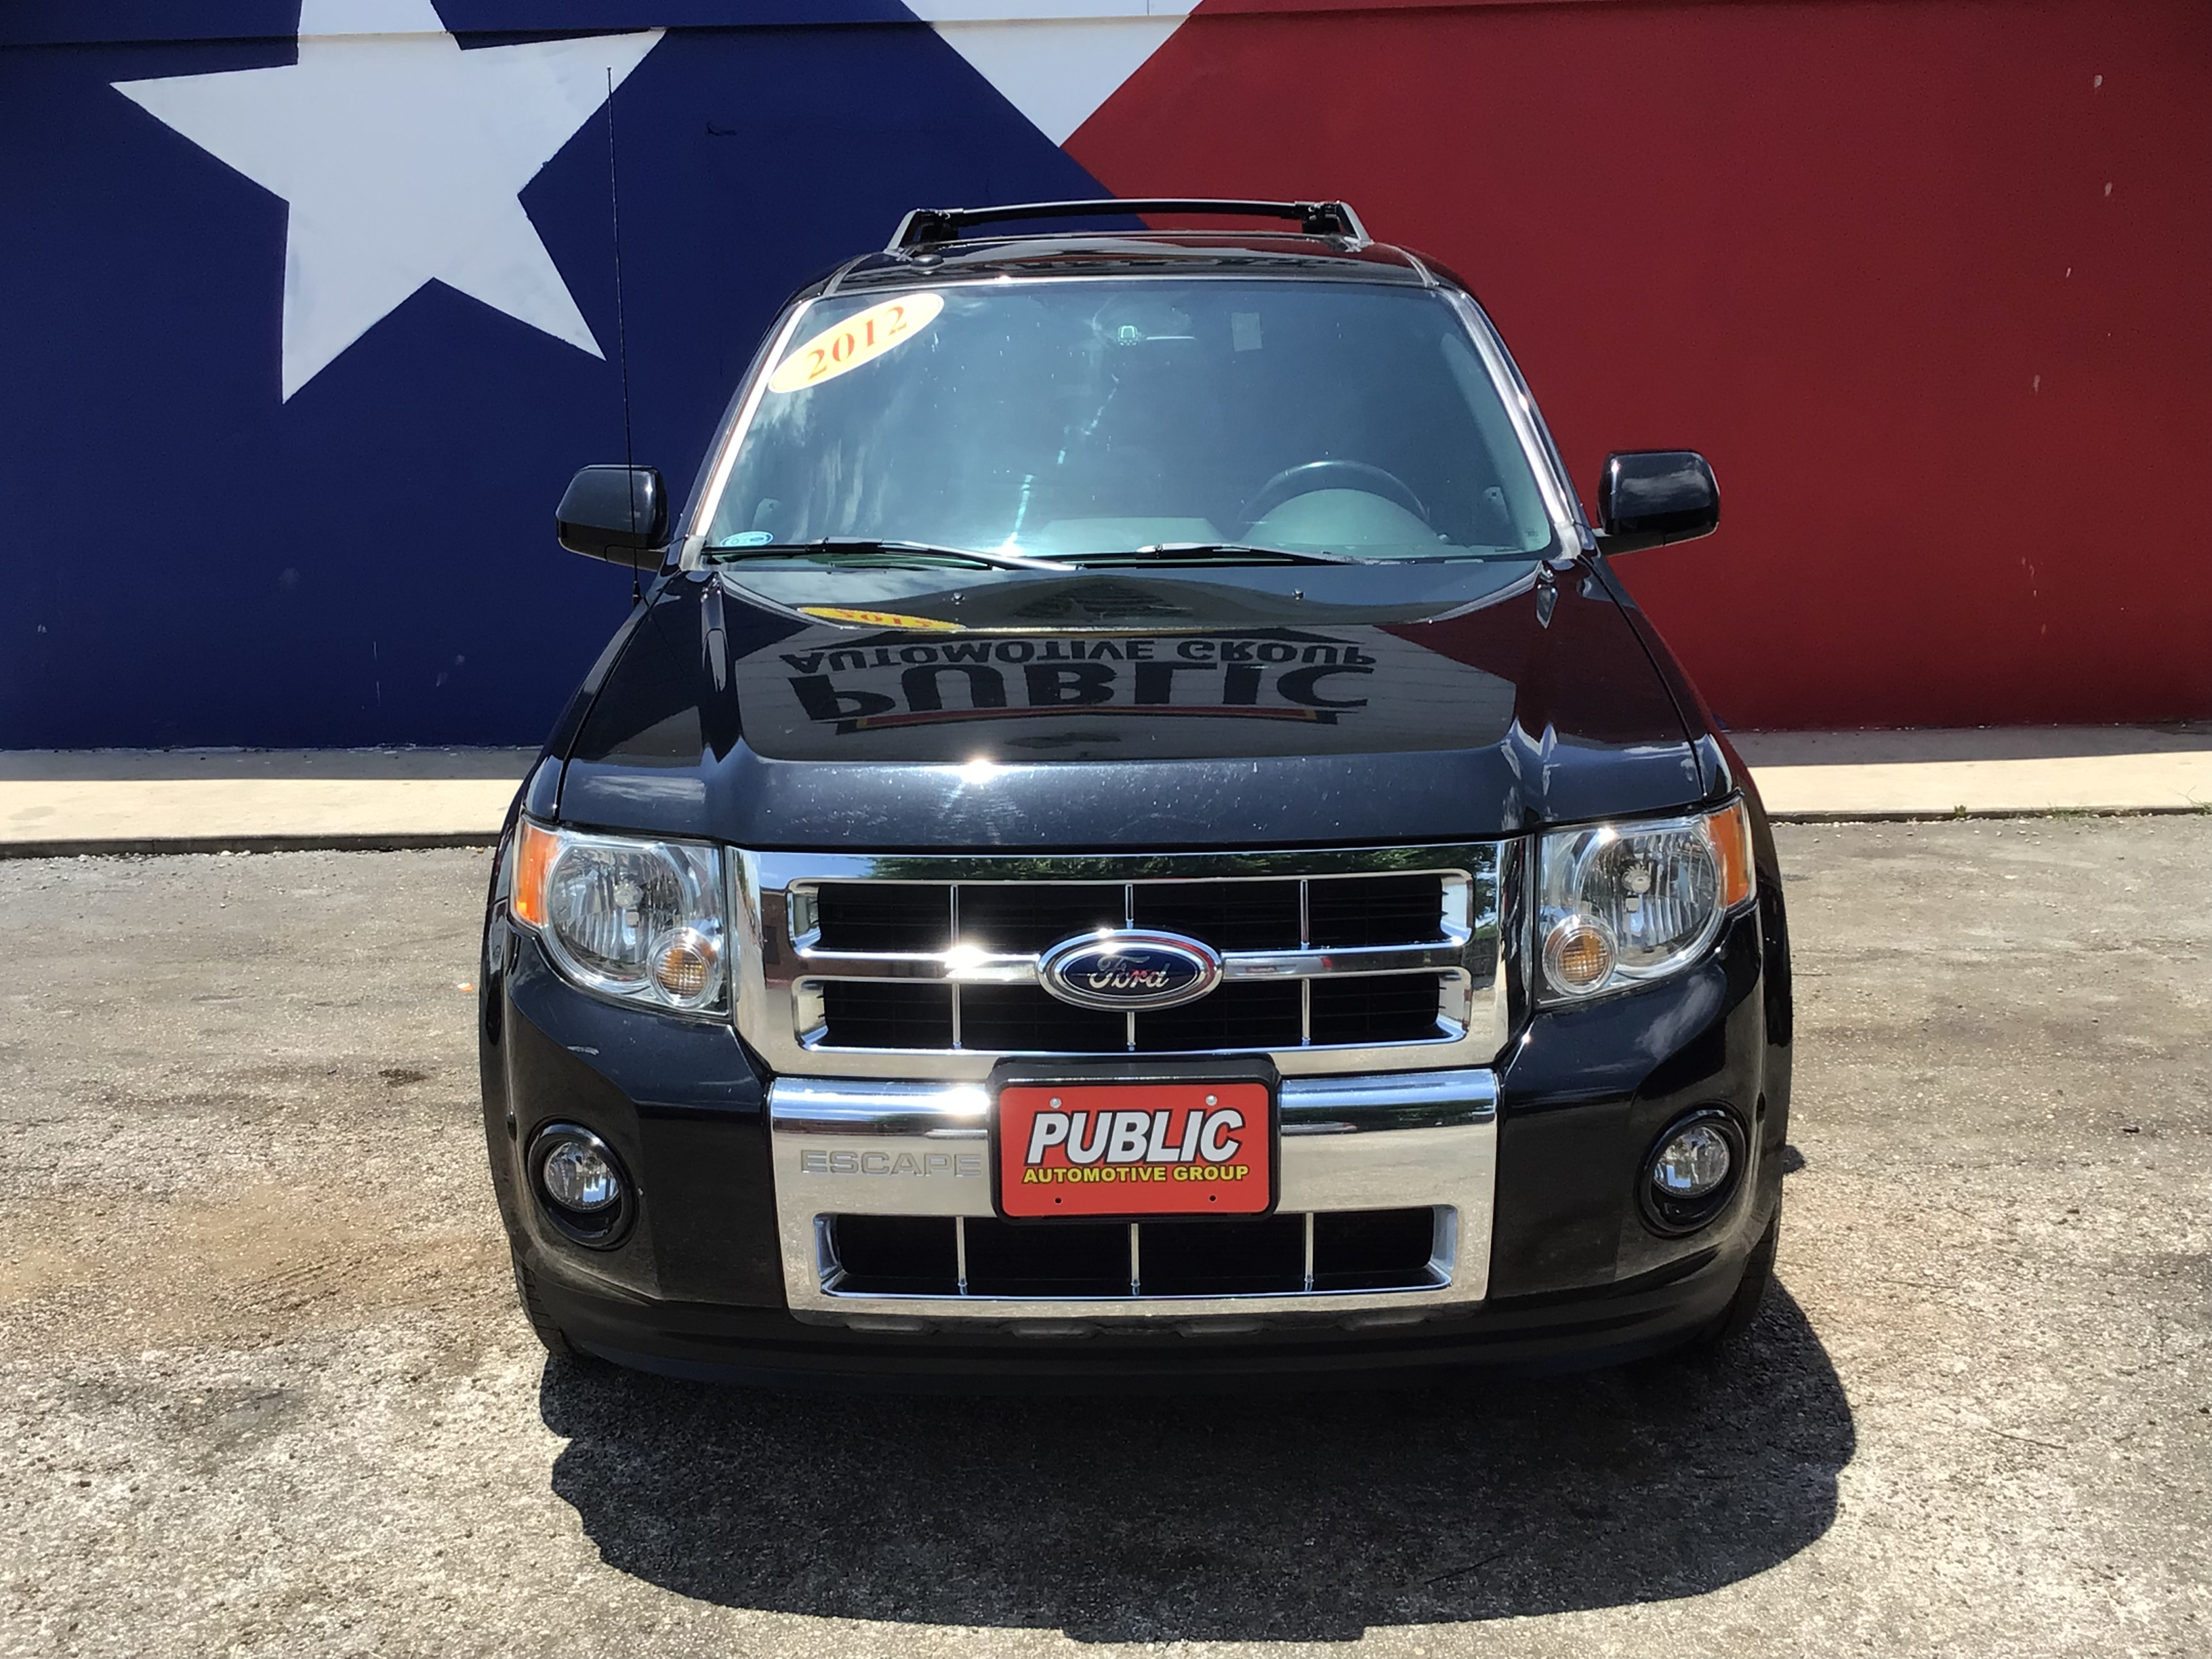 used vehicle - SUV FORD ESCAPE 2011